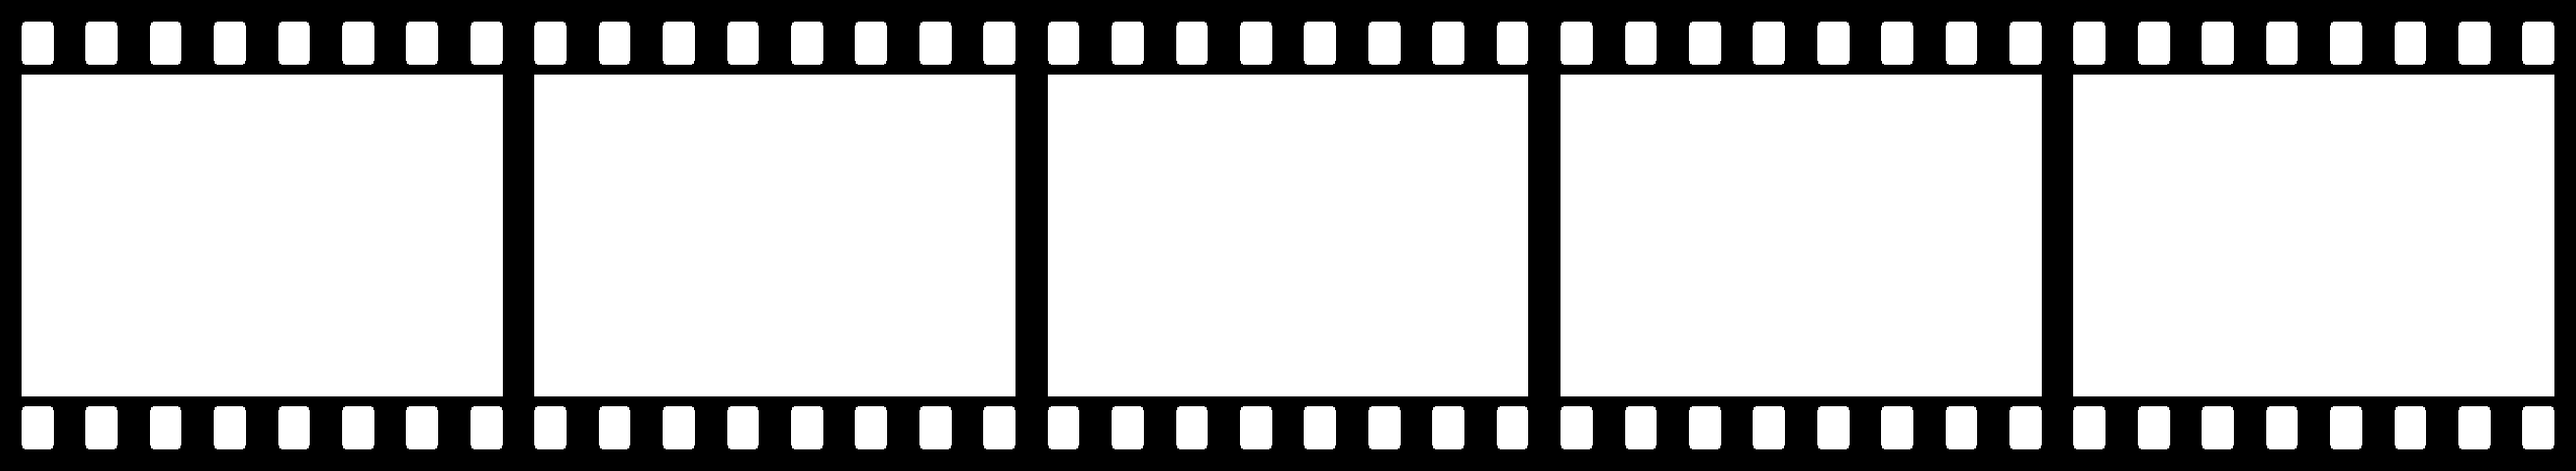 Blank film strip template clipart best for Film strip picture template